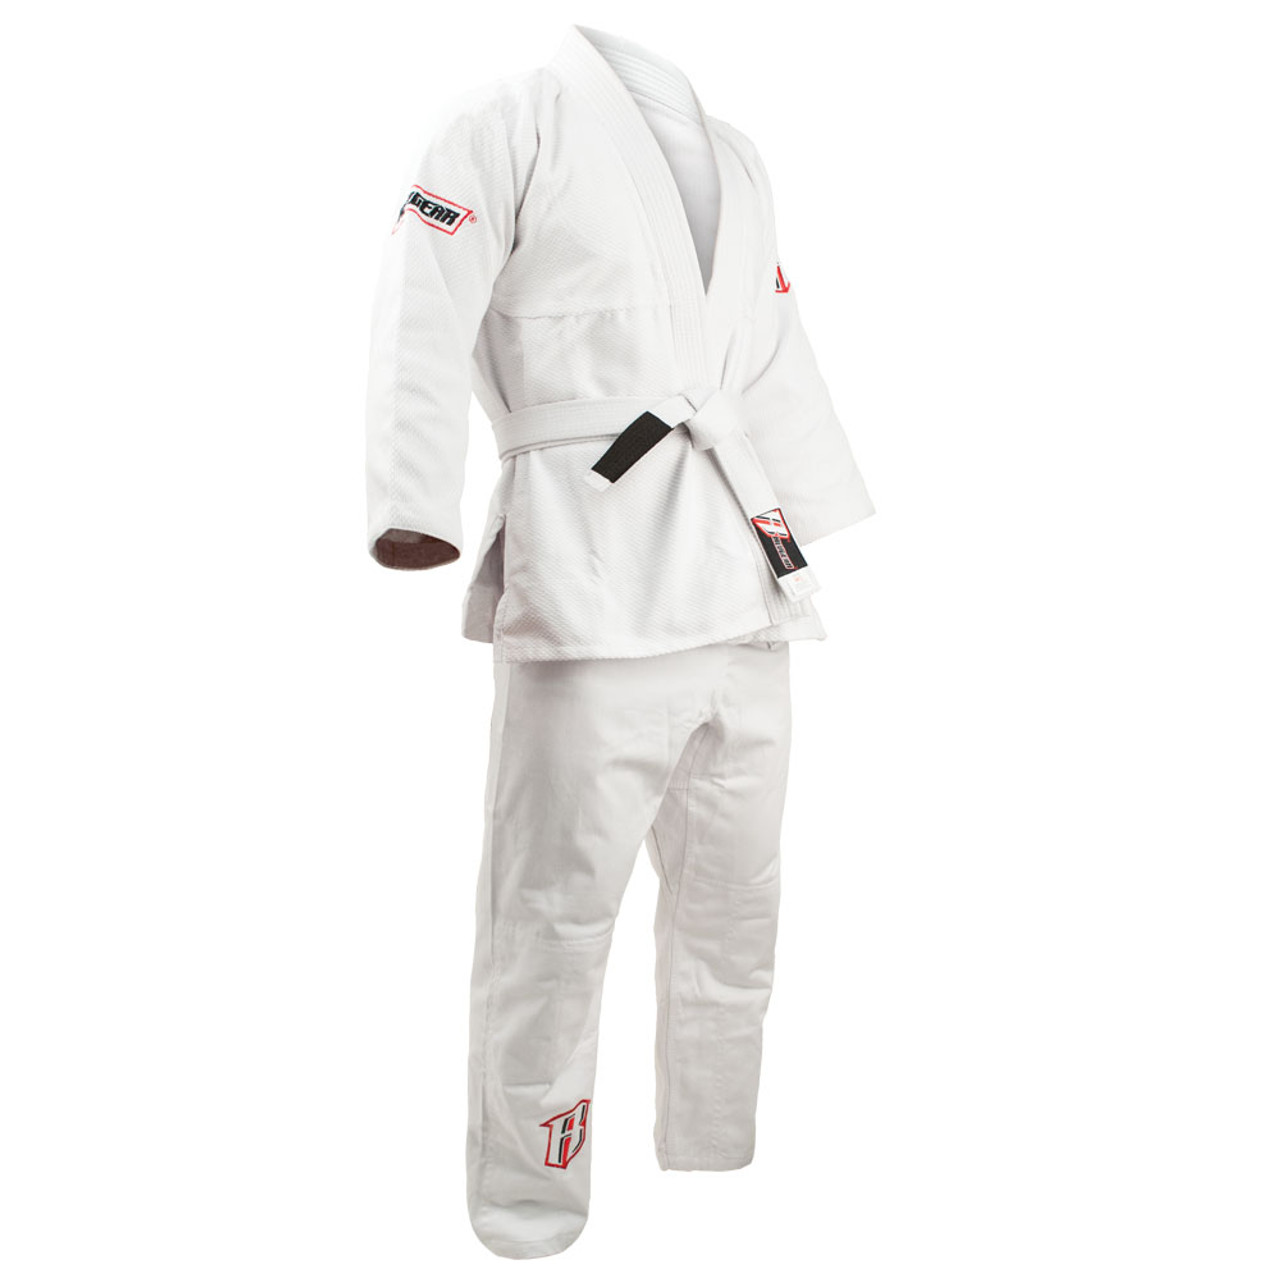 The Ultimate Jiu Jitsu Gi - White